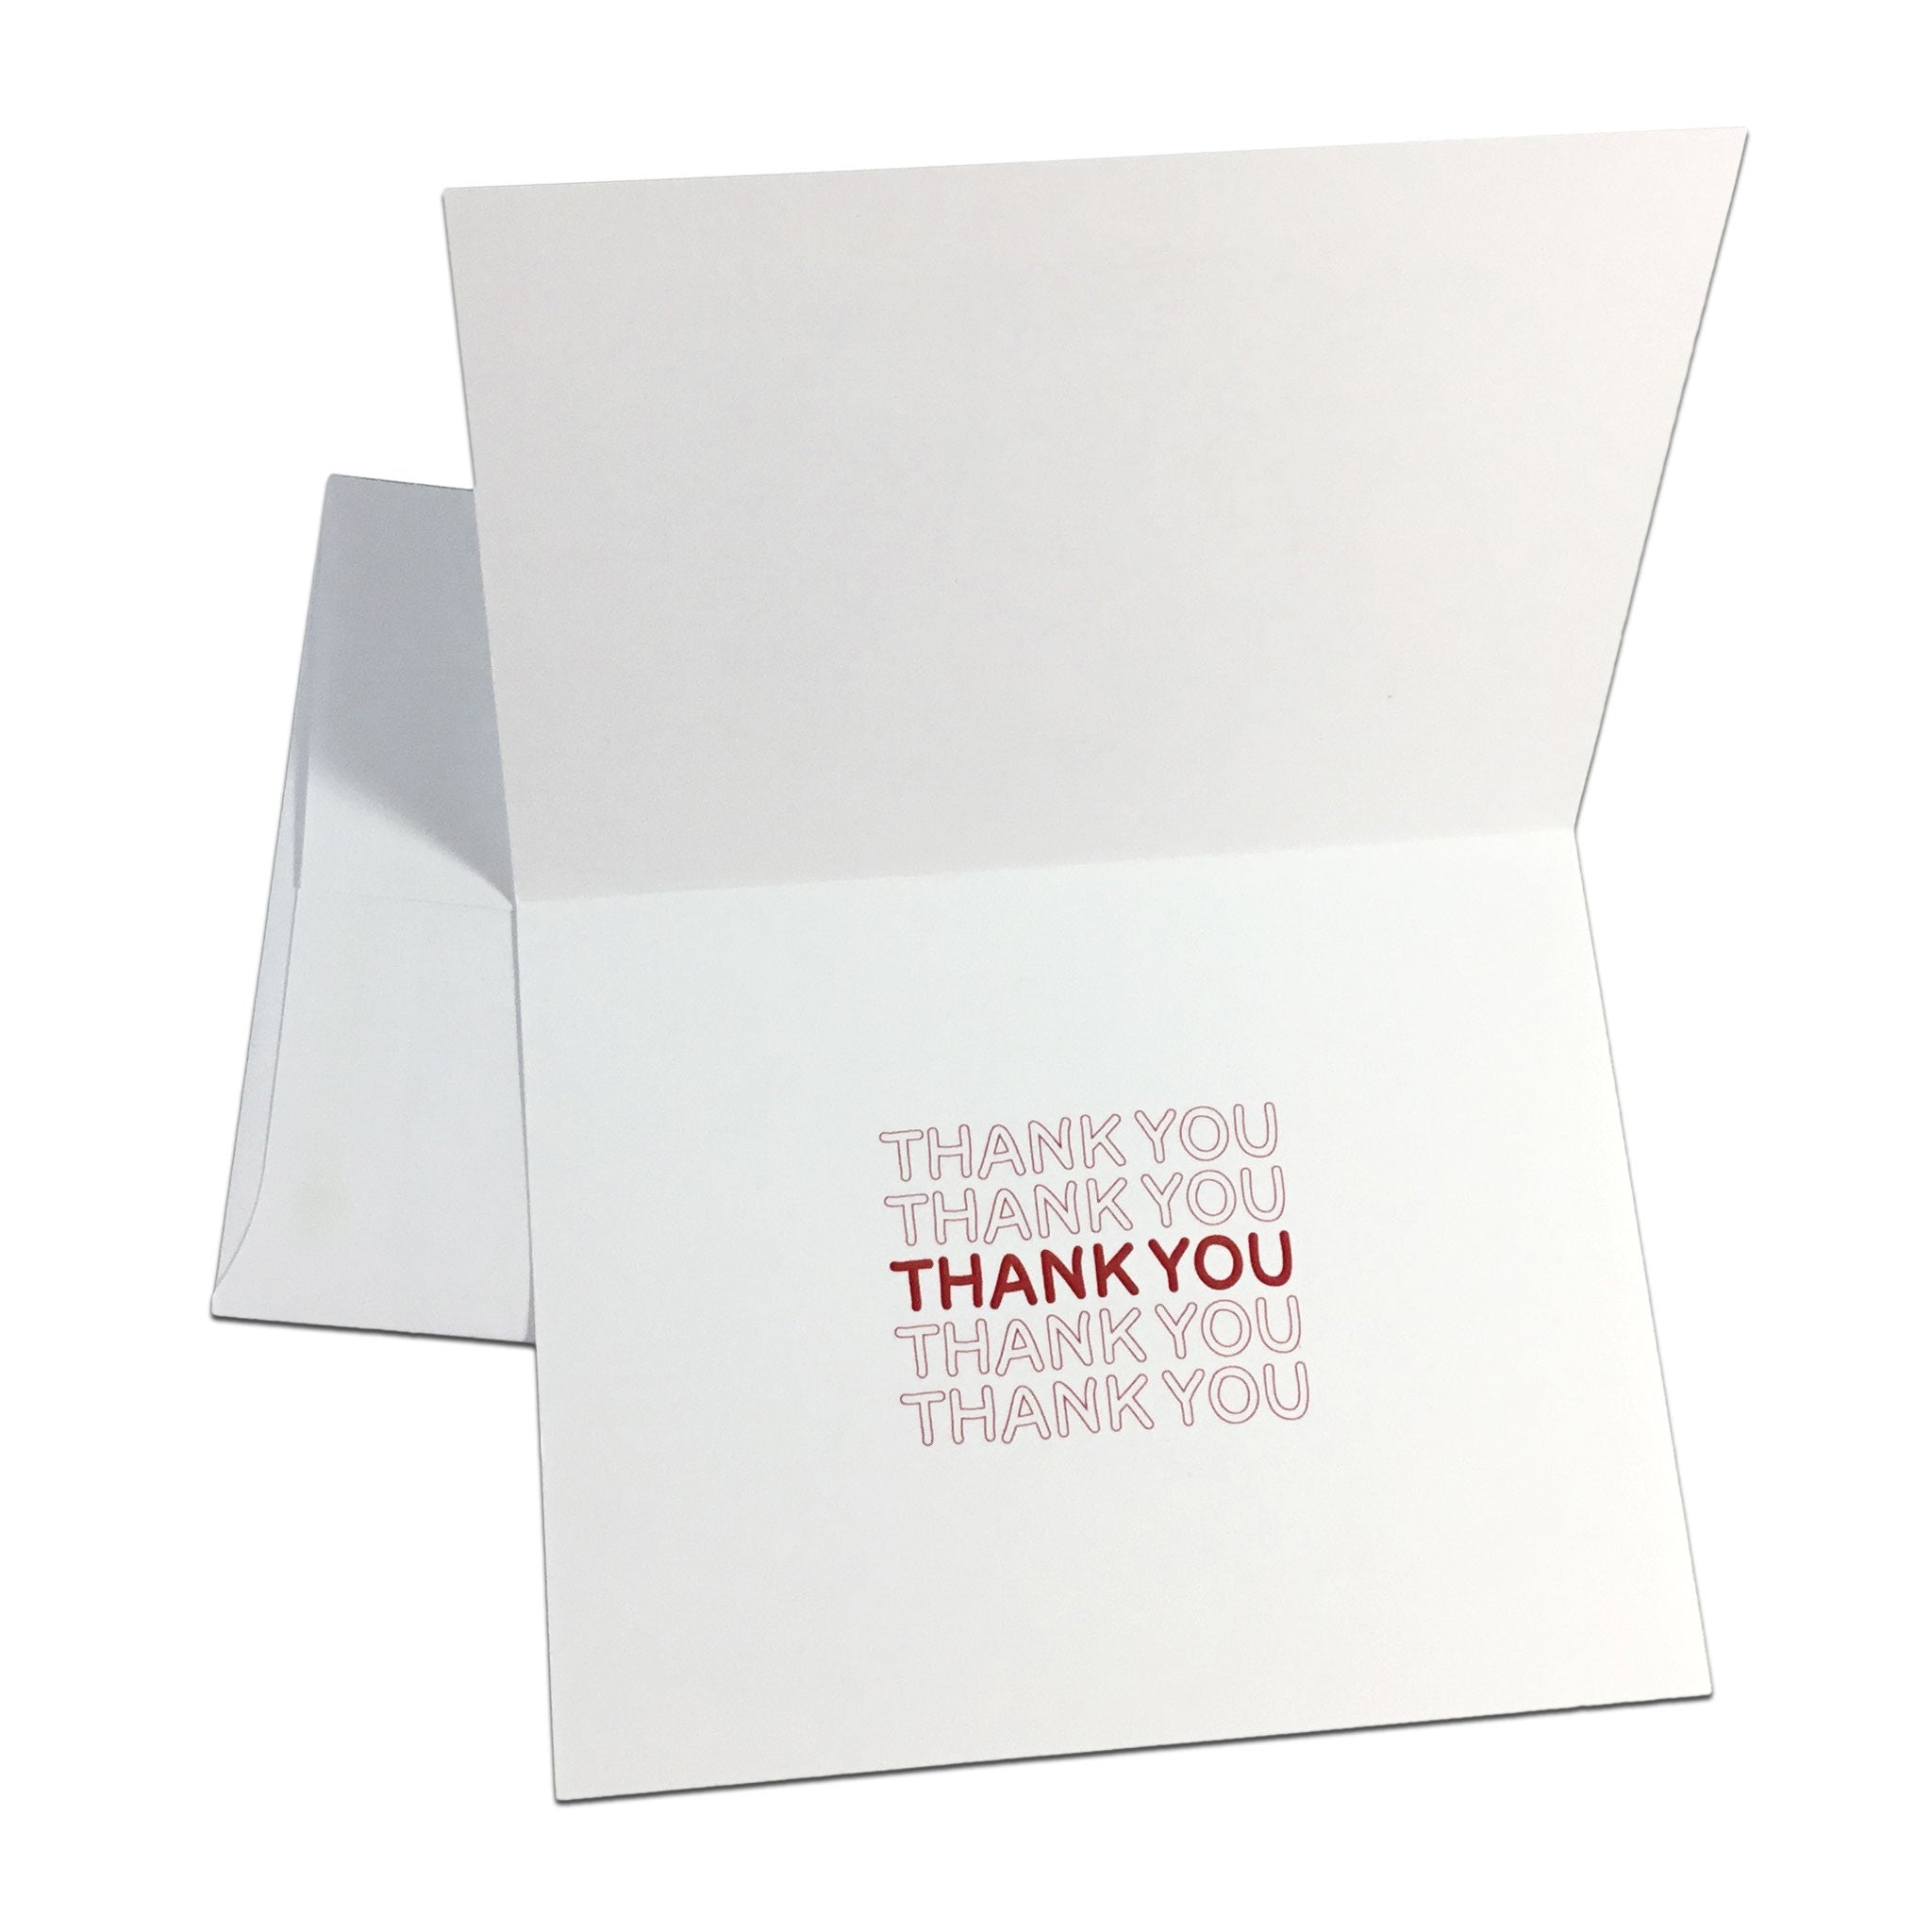 ThankYouThankYou Notecards - Vol. 1 (Set of 8)